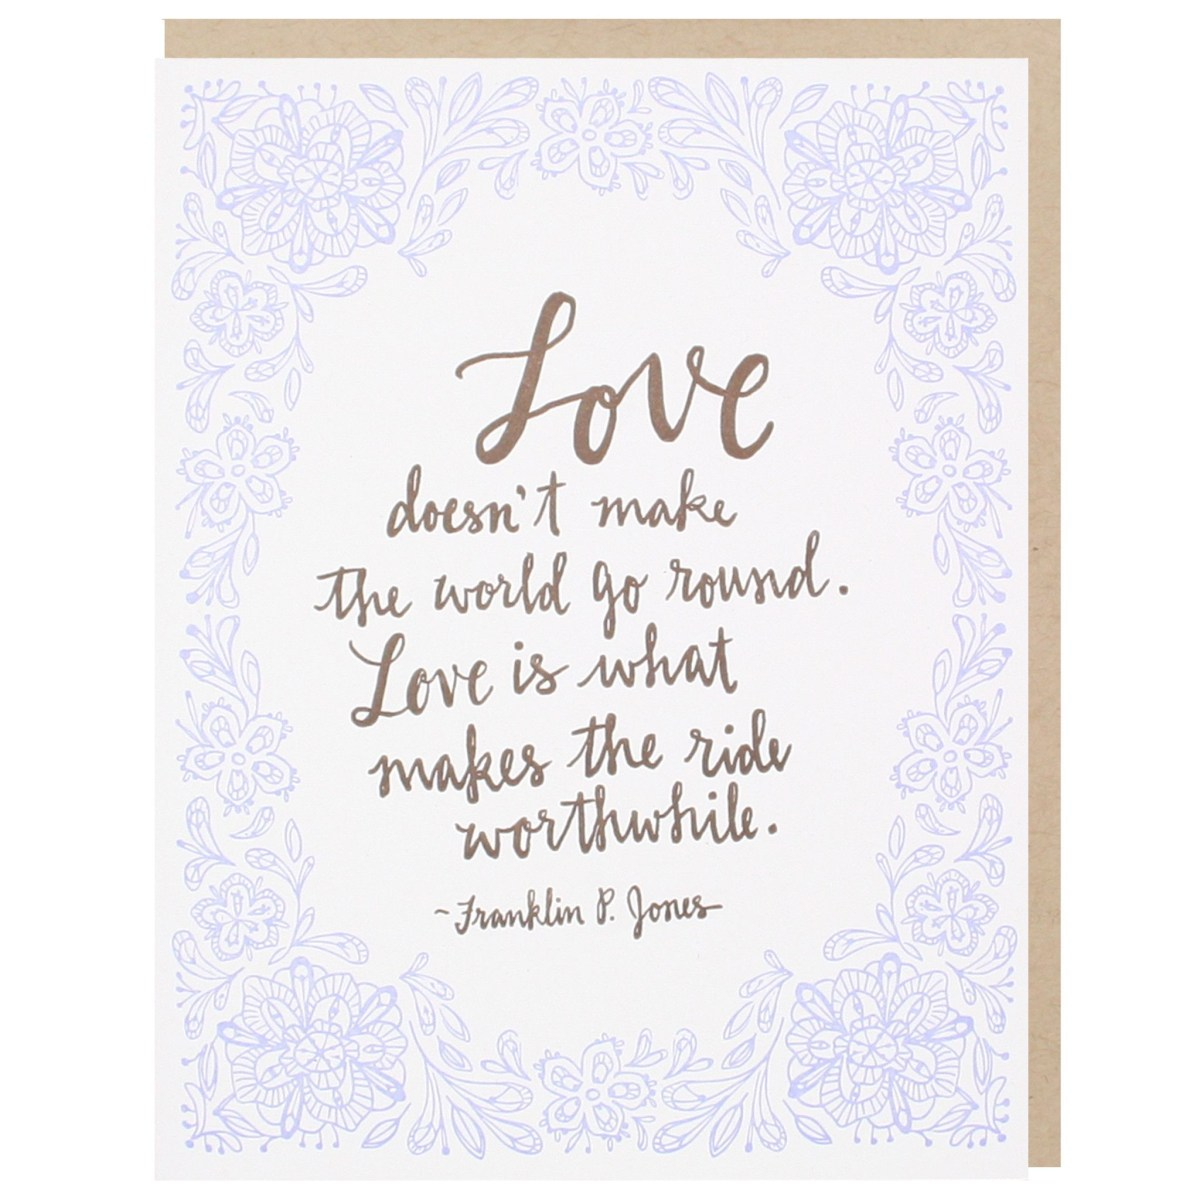 Quotes For Wedding Invitations Romantic Love Quote Wedding Card Power Of Love Pinterest